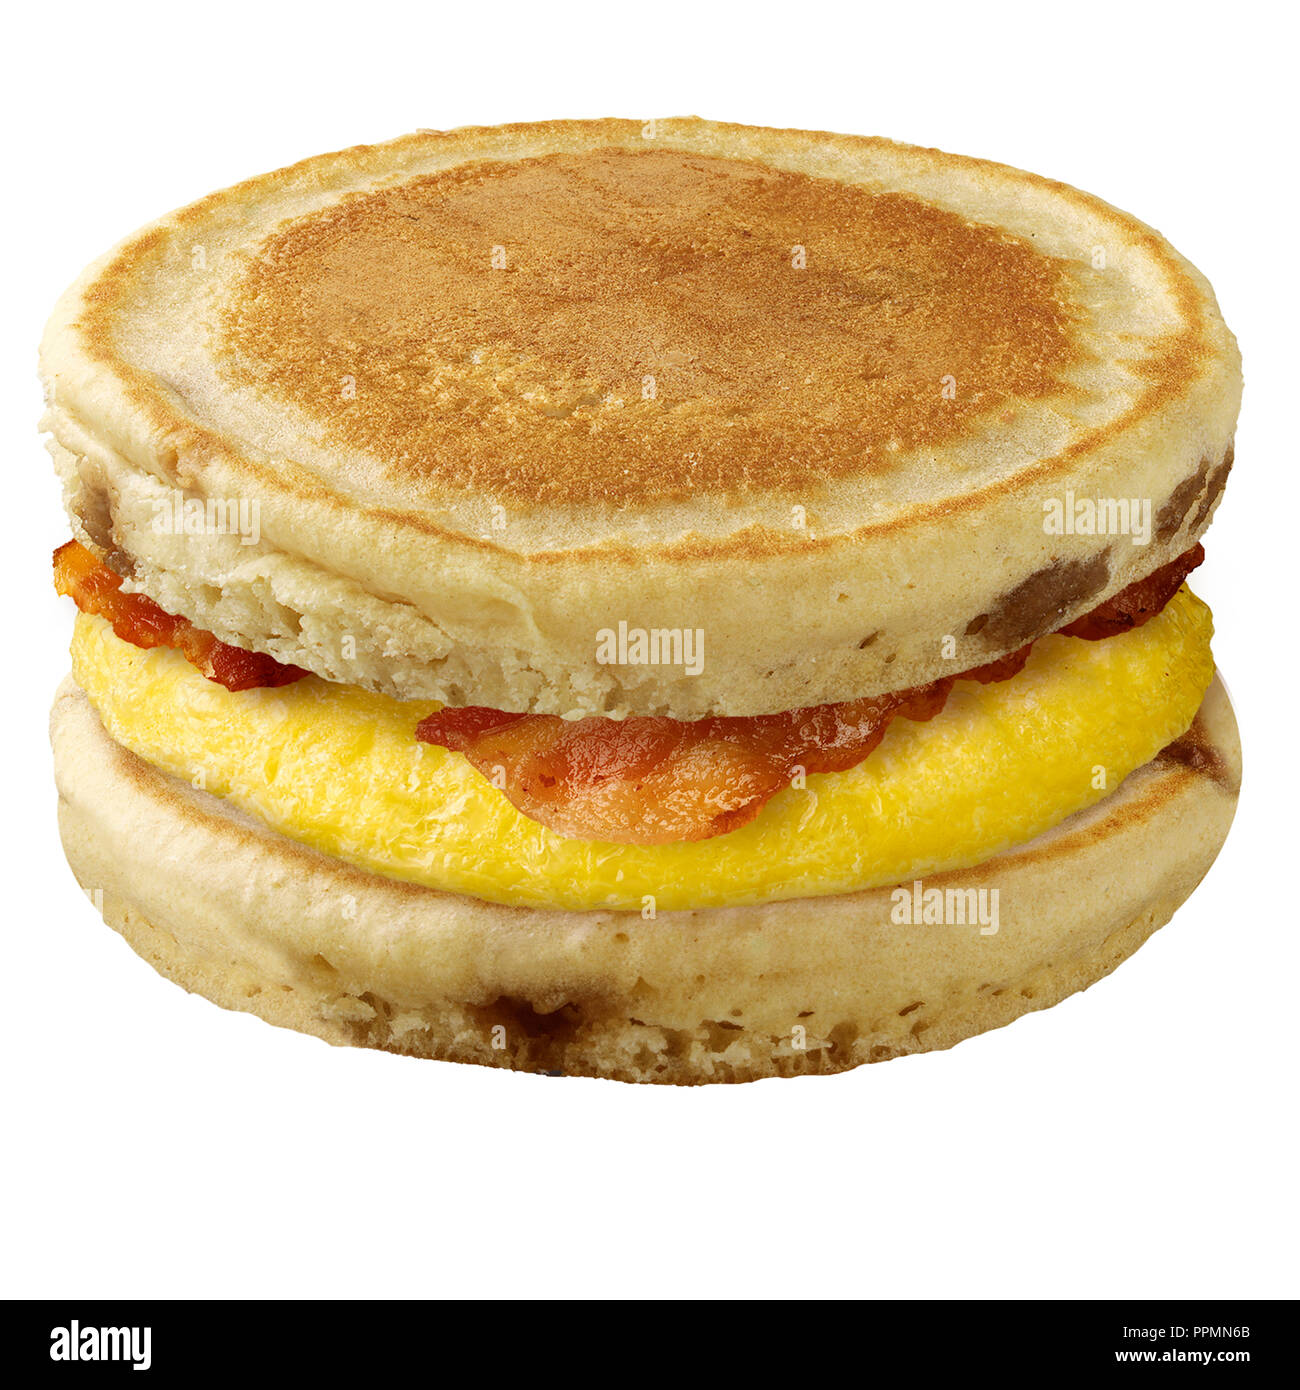 Pancake Egg And Bacon Sandwich Stock Photo 220502531 Alamy